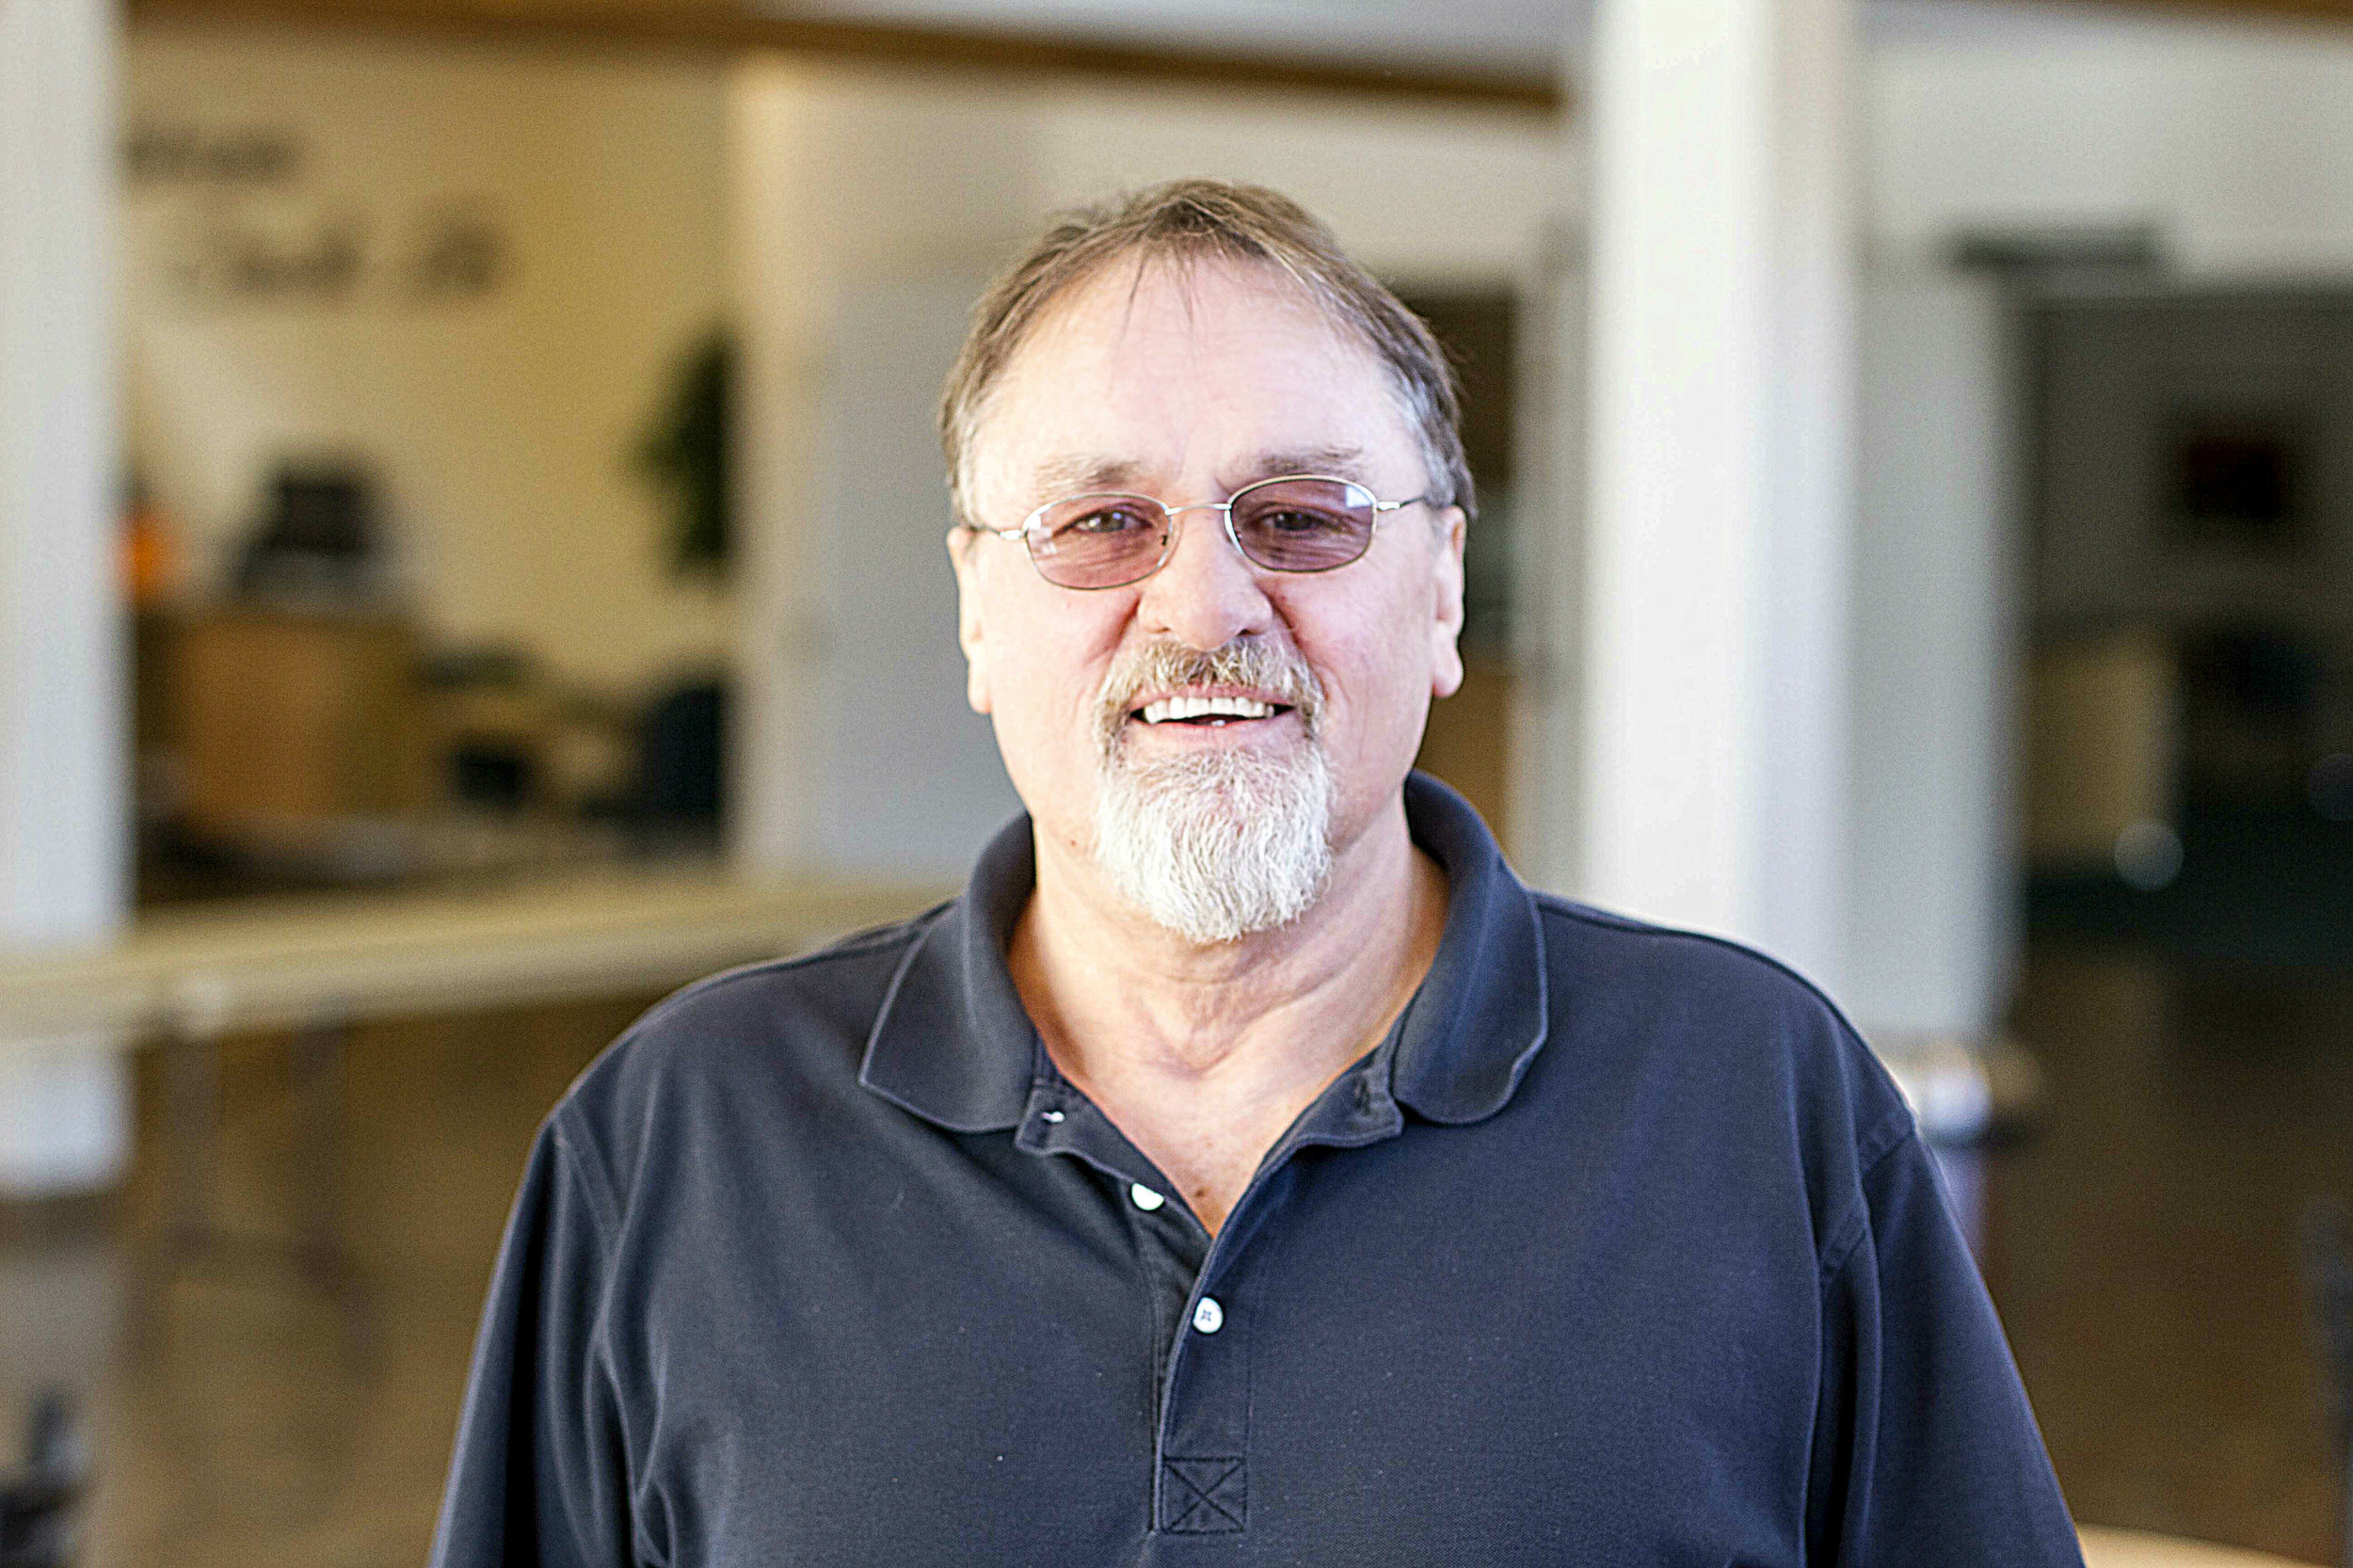 John Jeninga - I was born in Holland, raised in Wisconsin and lived in El Paso TX while serving in the US Army before coming to Washington in 1975. As the Creative Arts Director at MLPC, I am involved with managing the tech team and tech resources as needed in church programming and services.Contact John: john@shirtbuilders.com